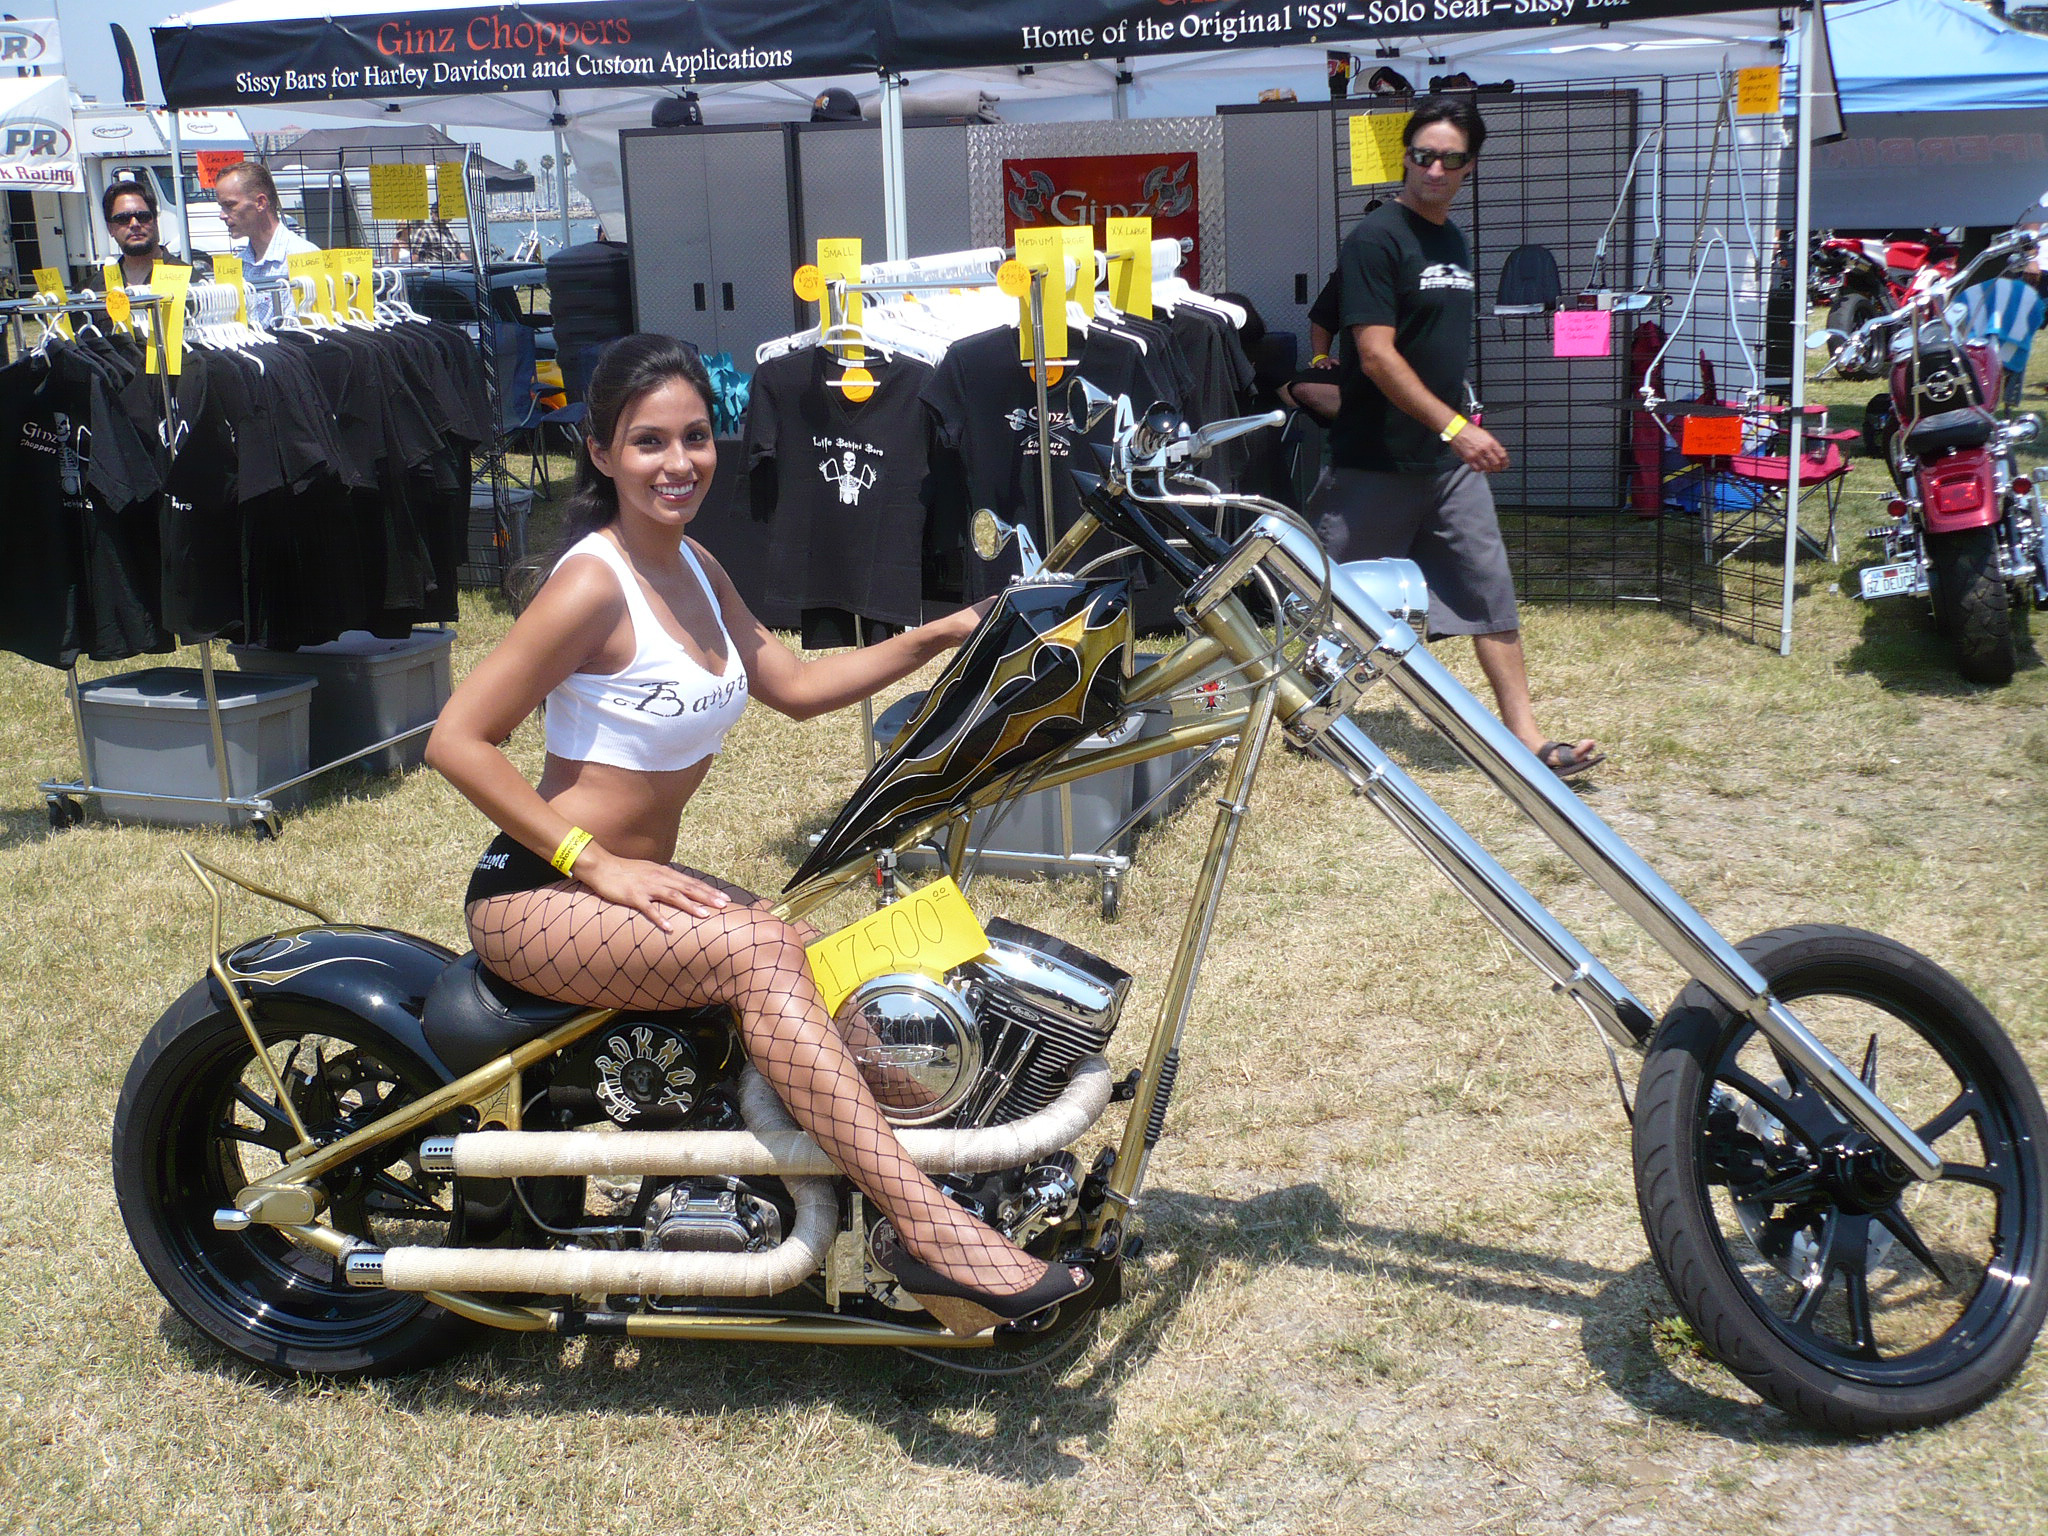 FastDates.com Iron & Lace Calendar & Custom Motorcycle News